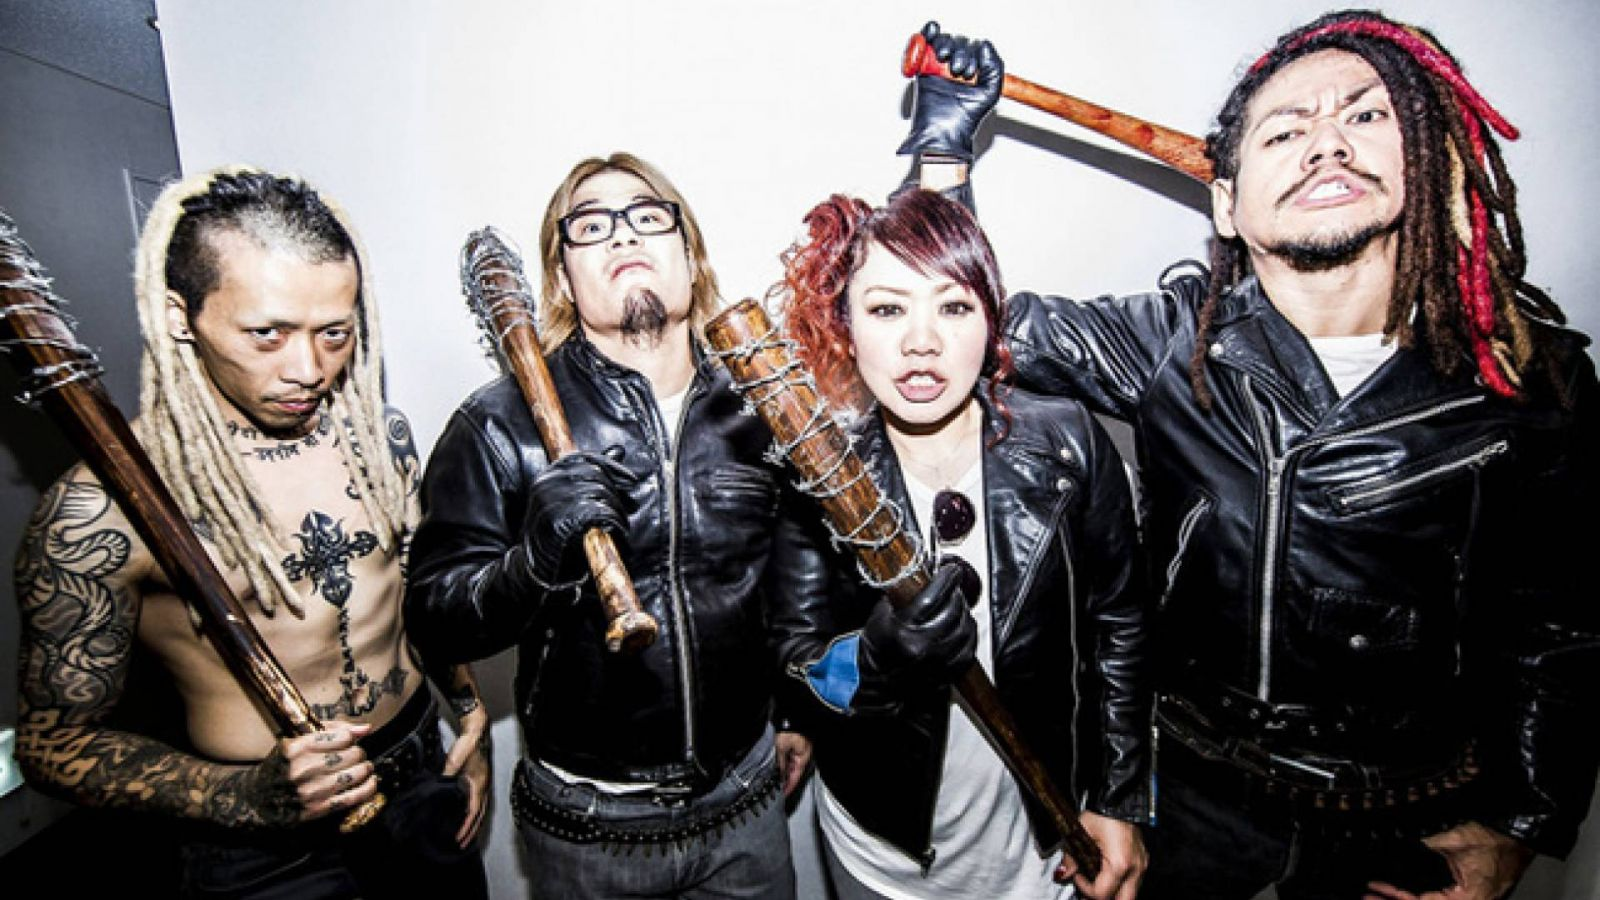 MAXIMUM THE HORMONE zawiesza koncertowanie © MAXIMUM THE HORMONE. All rights reserved.